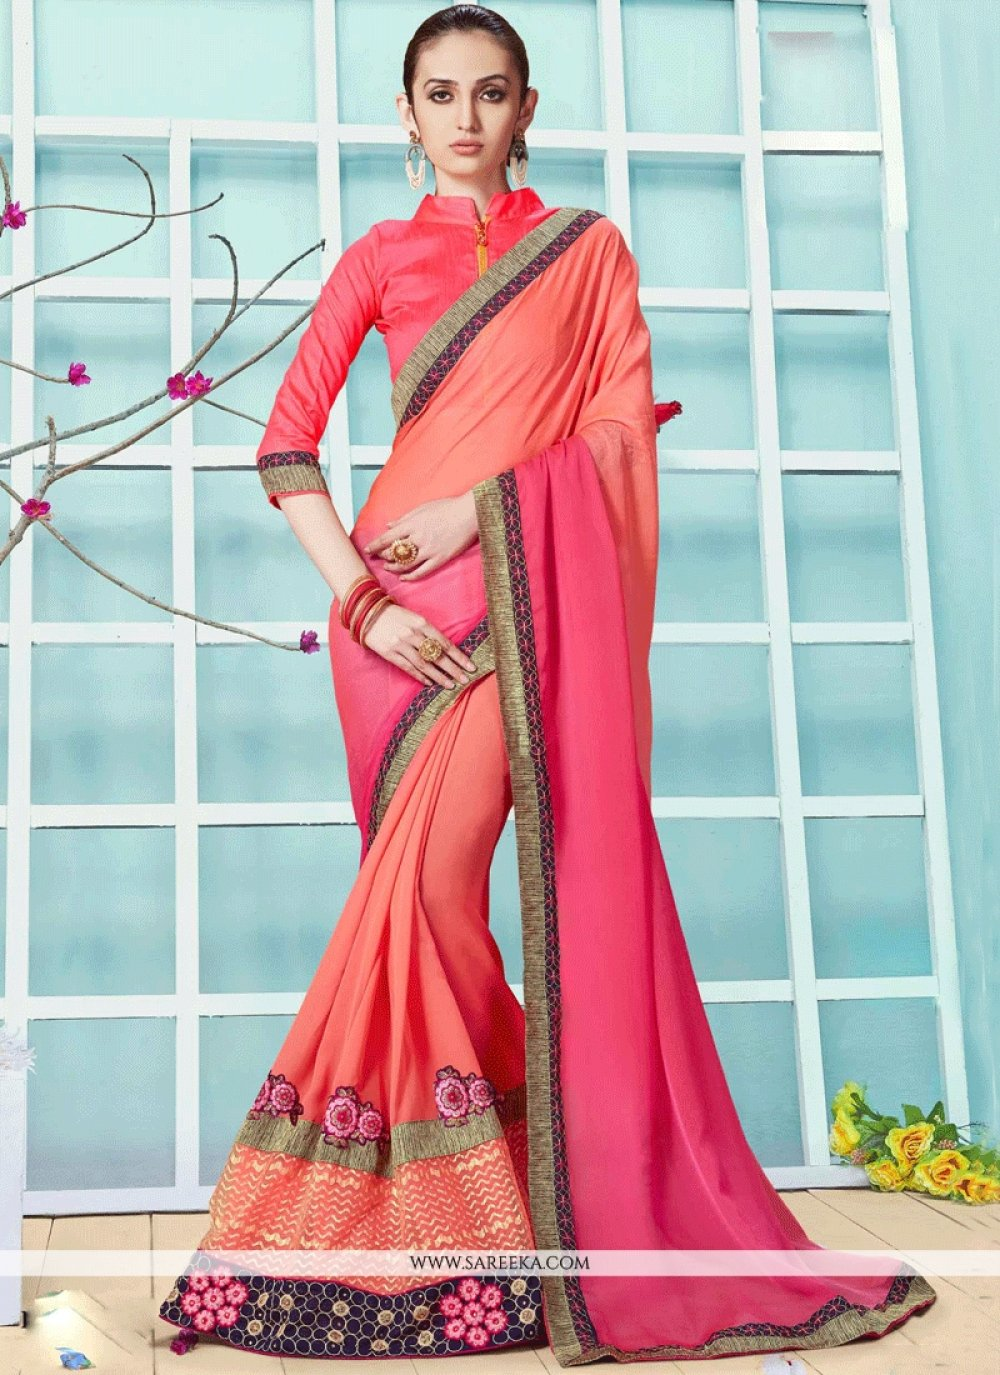 Lace Work Peach and Rose Pink Shaded Saree